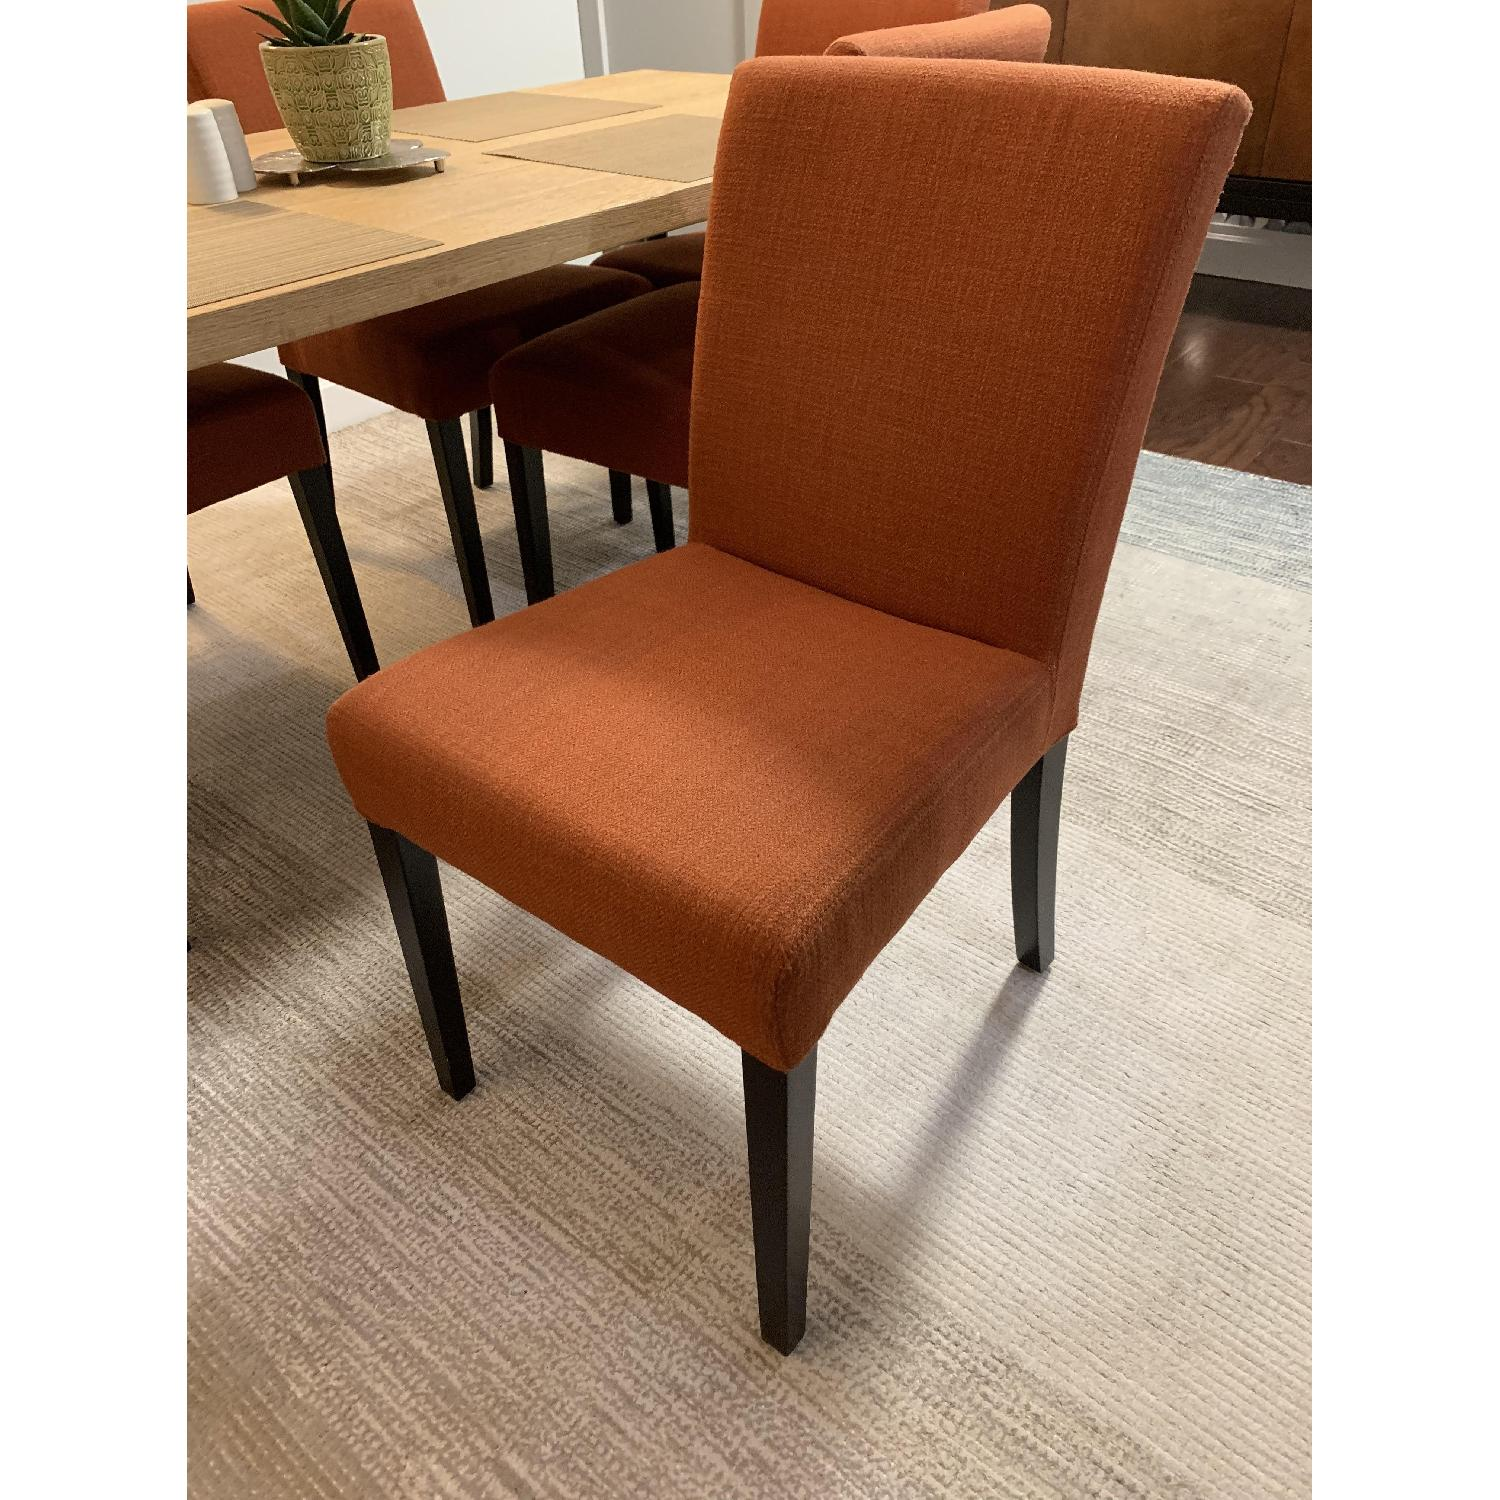 Crate & Barrel Lowe Persimmon Upholstered Dining Chairs ...